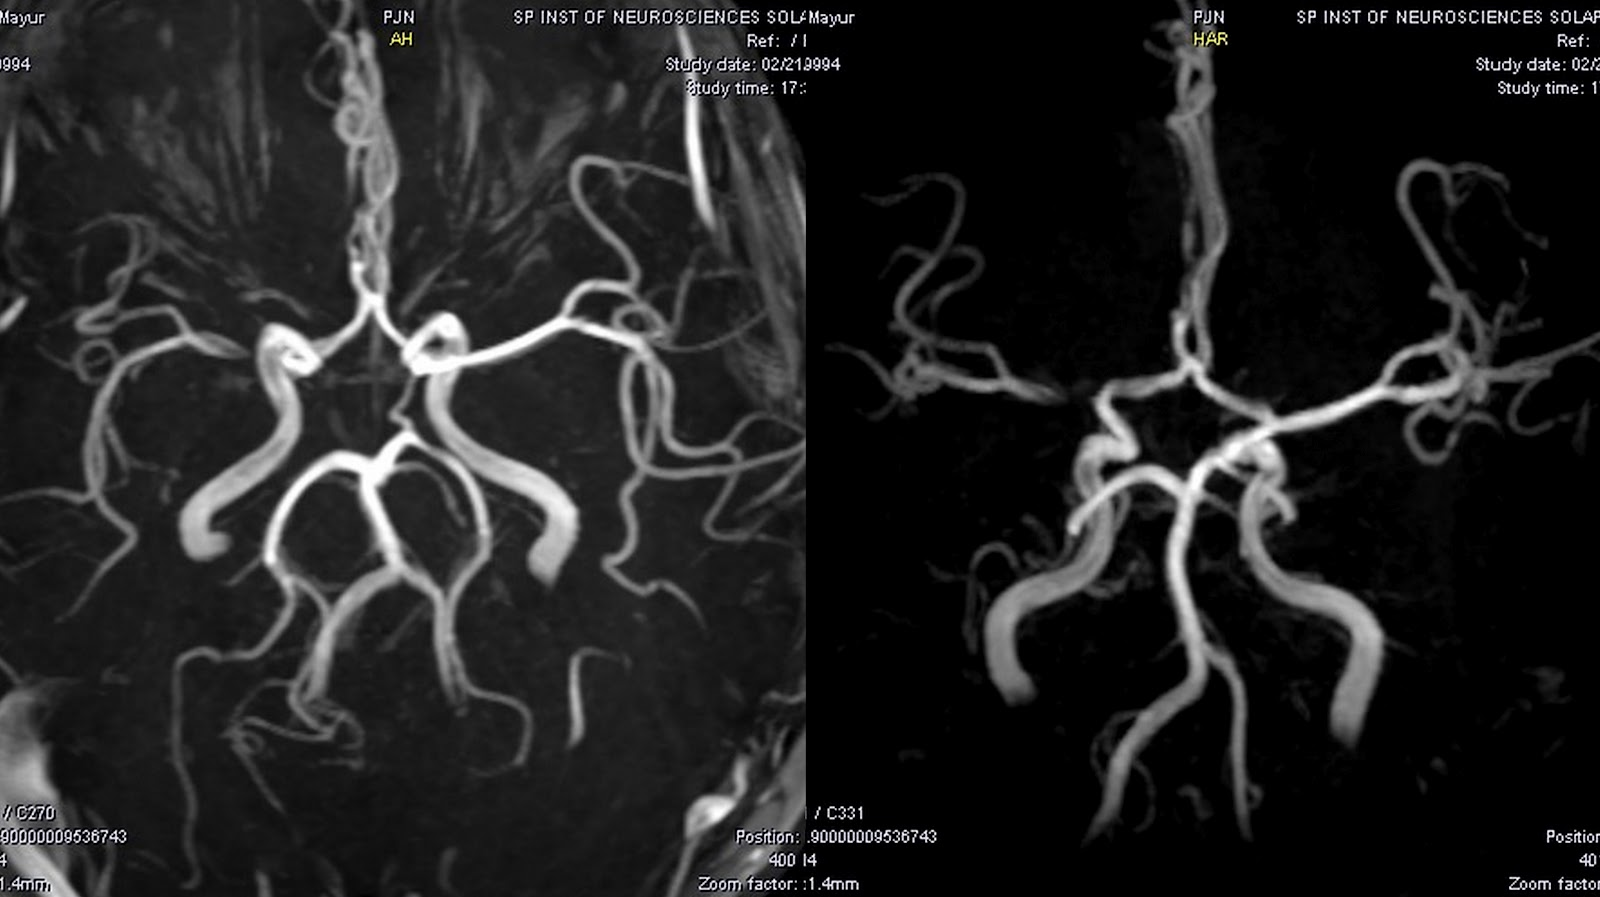 Dr Balaji Anvekar\'s Neuroradiology Cases: 01/02/12 - 01/03/12